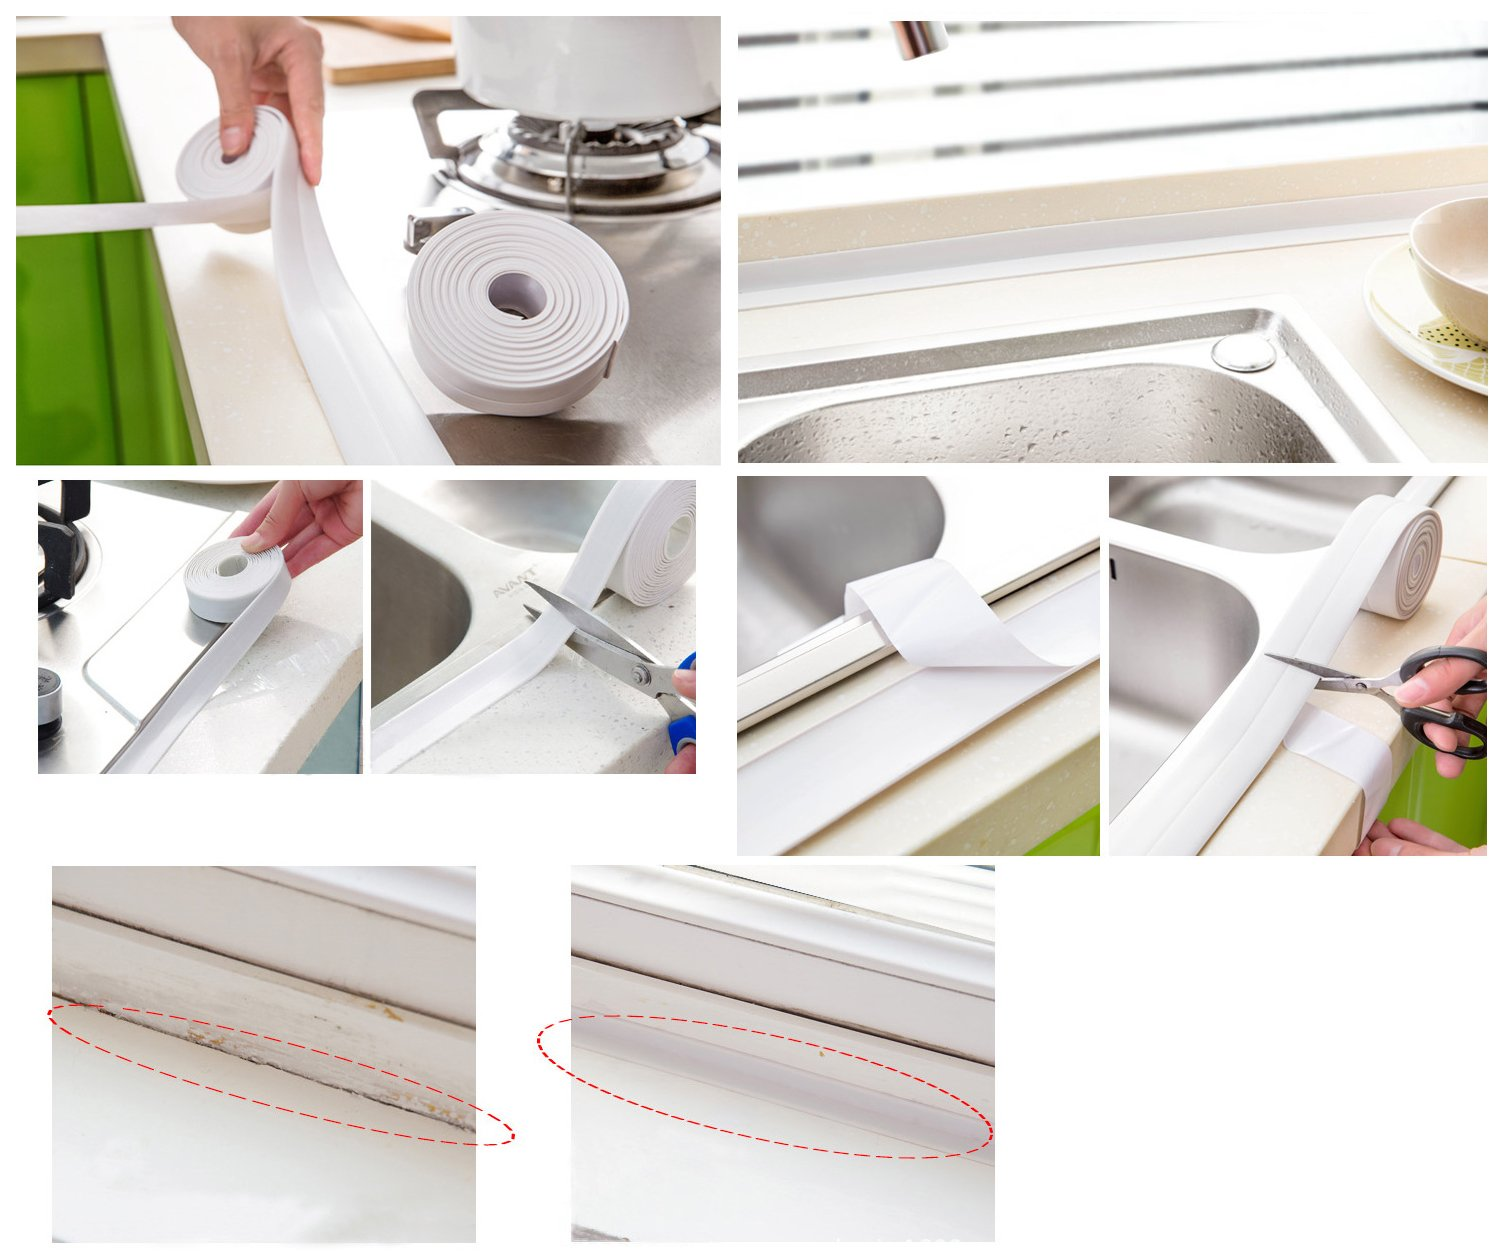 Chengsi Kitchen Bathroom Corner Line Waterproof Tape Baby Safety Furniture and Table Edge Corner Protector Bumper Strip White